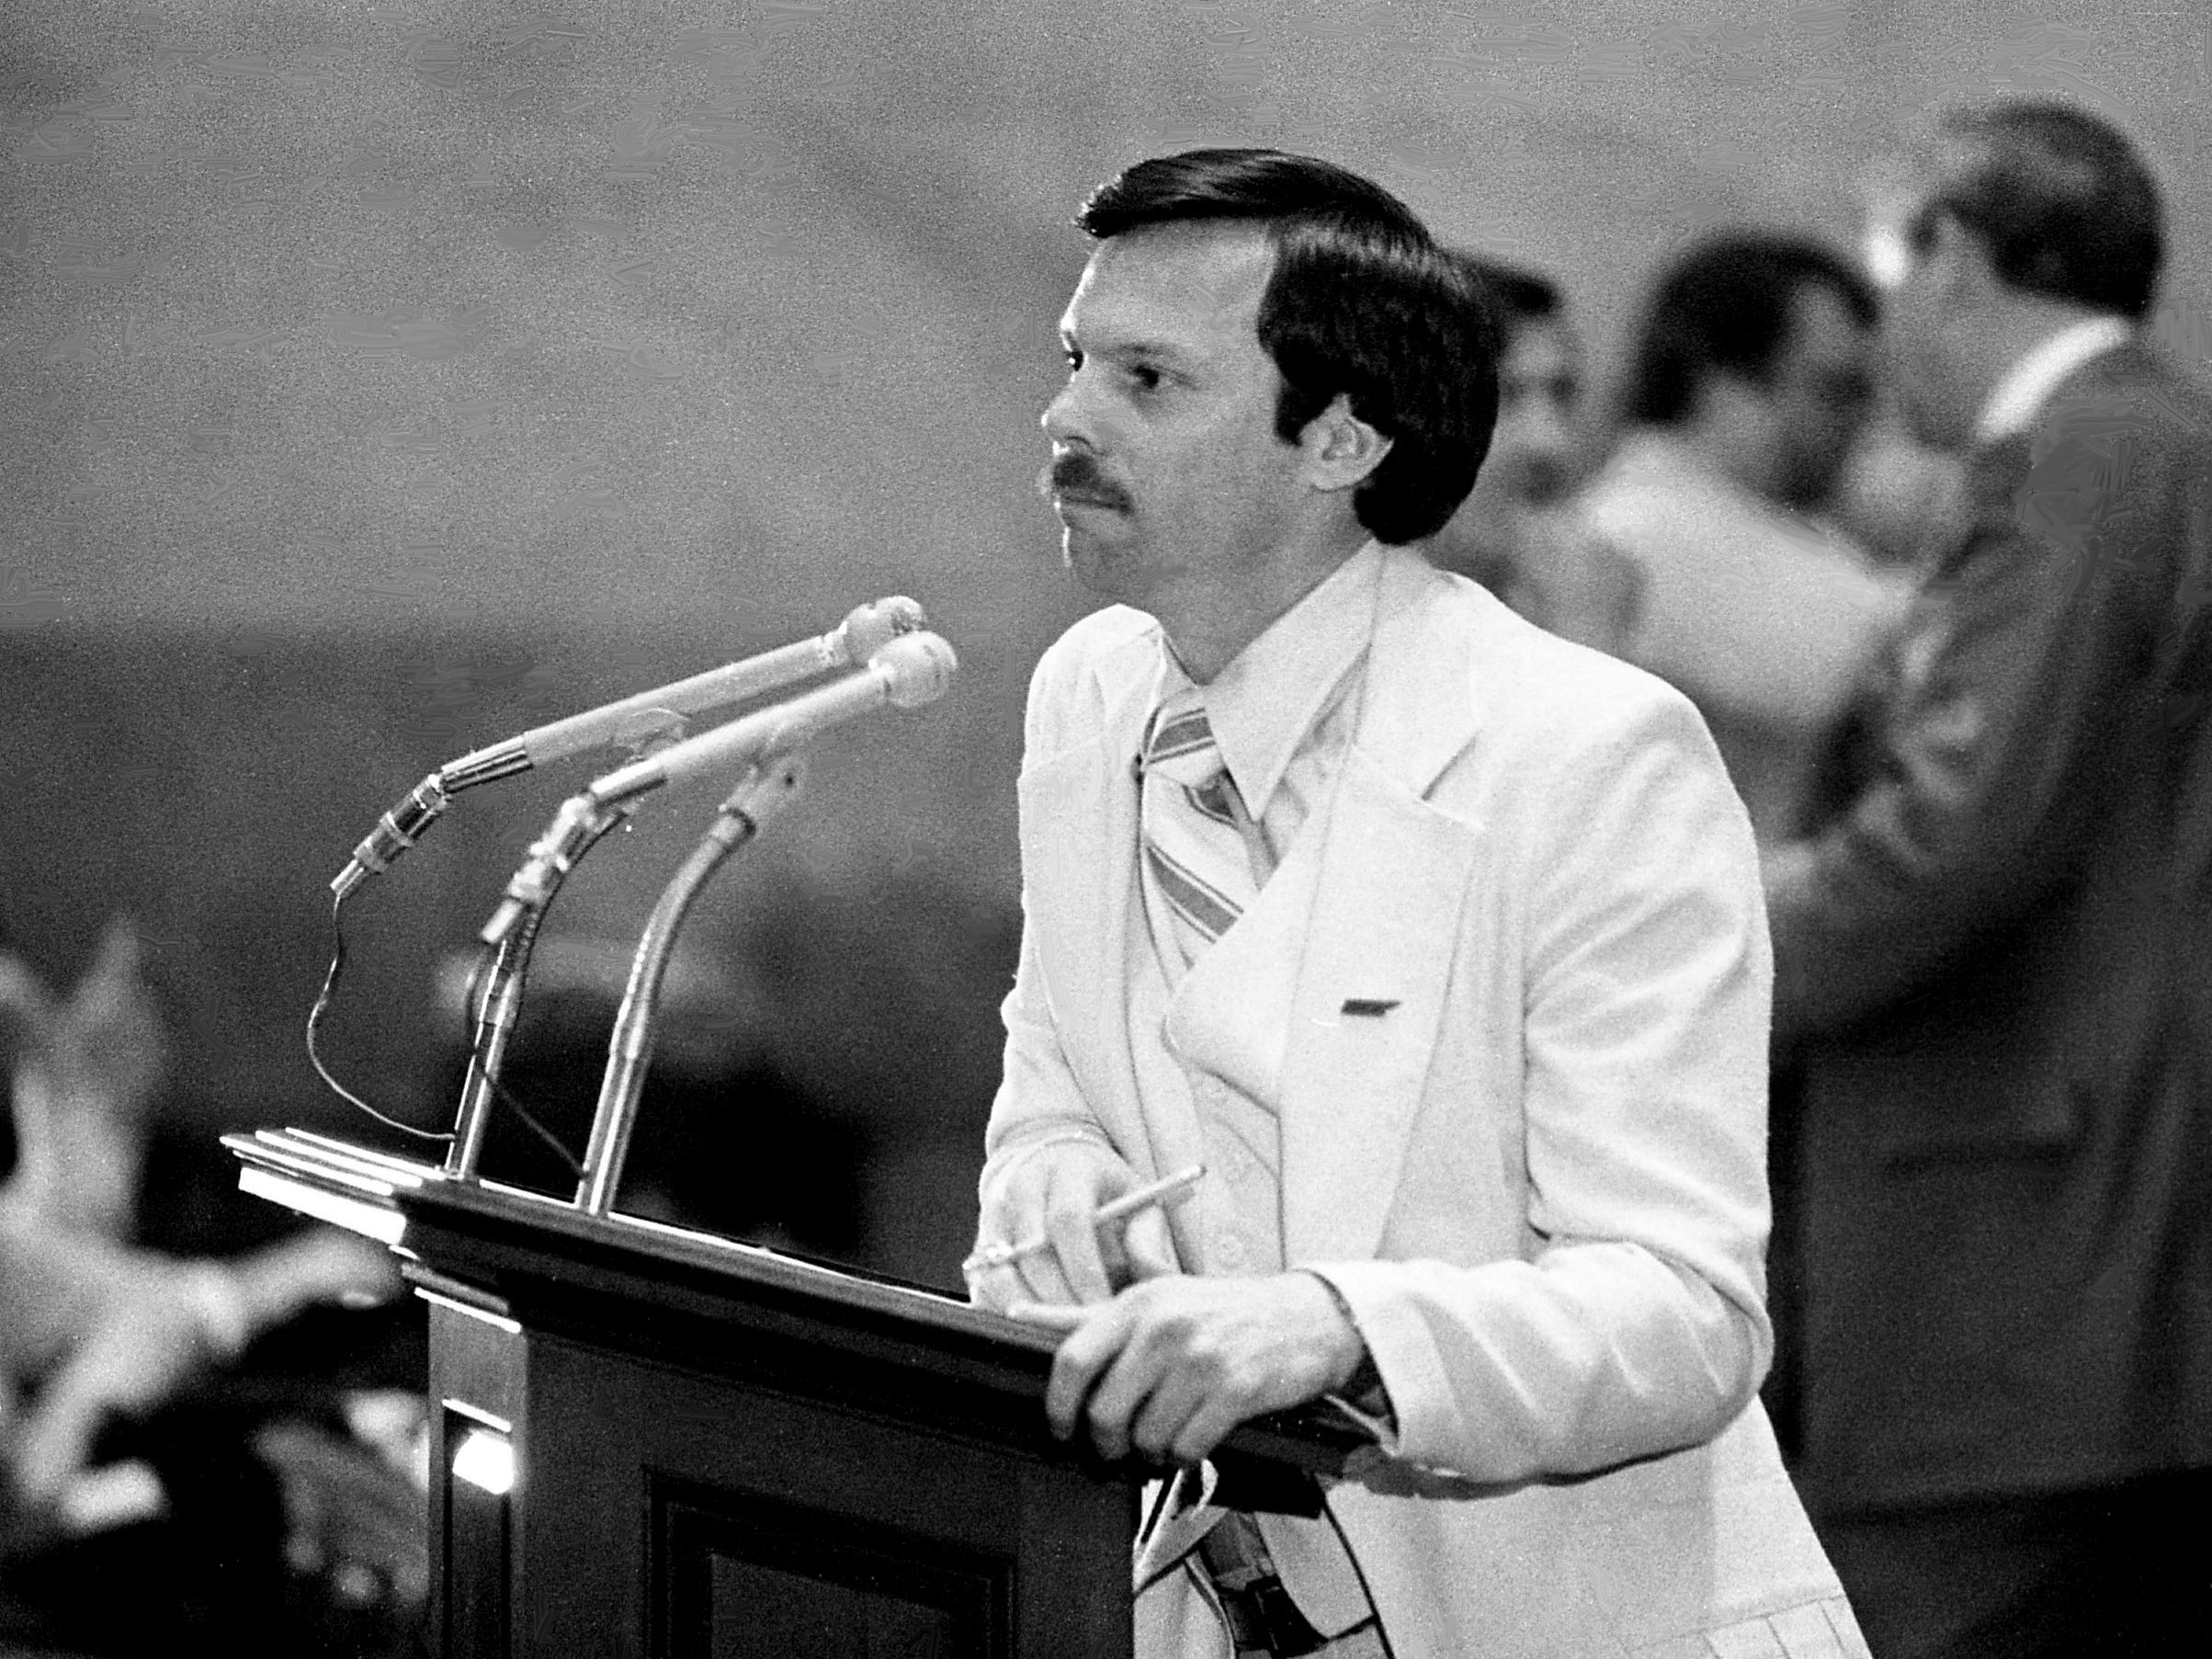 Rep. Donald Hood, D-Kingsport, is arguing for his legislation to replace the state's electric chair with a lethal injection of drugs in death penalty cases before members at the state Capitol on April 11, 1979.